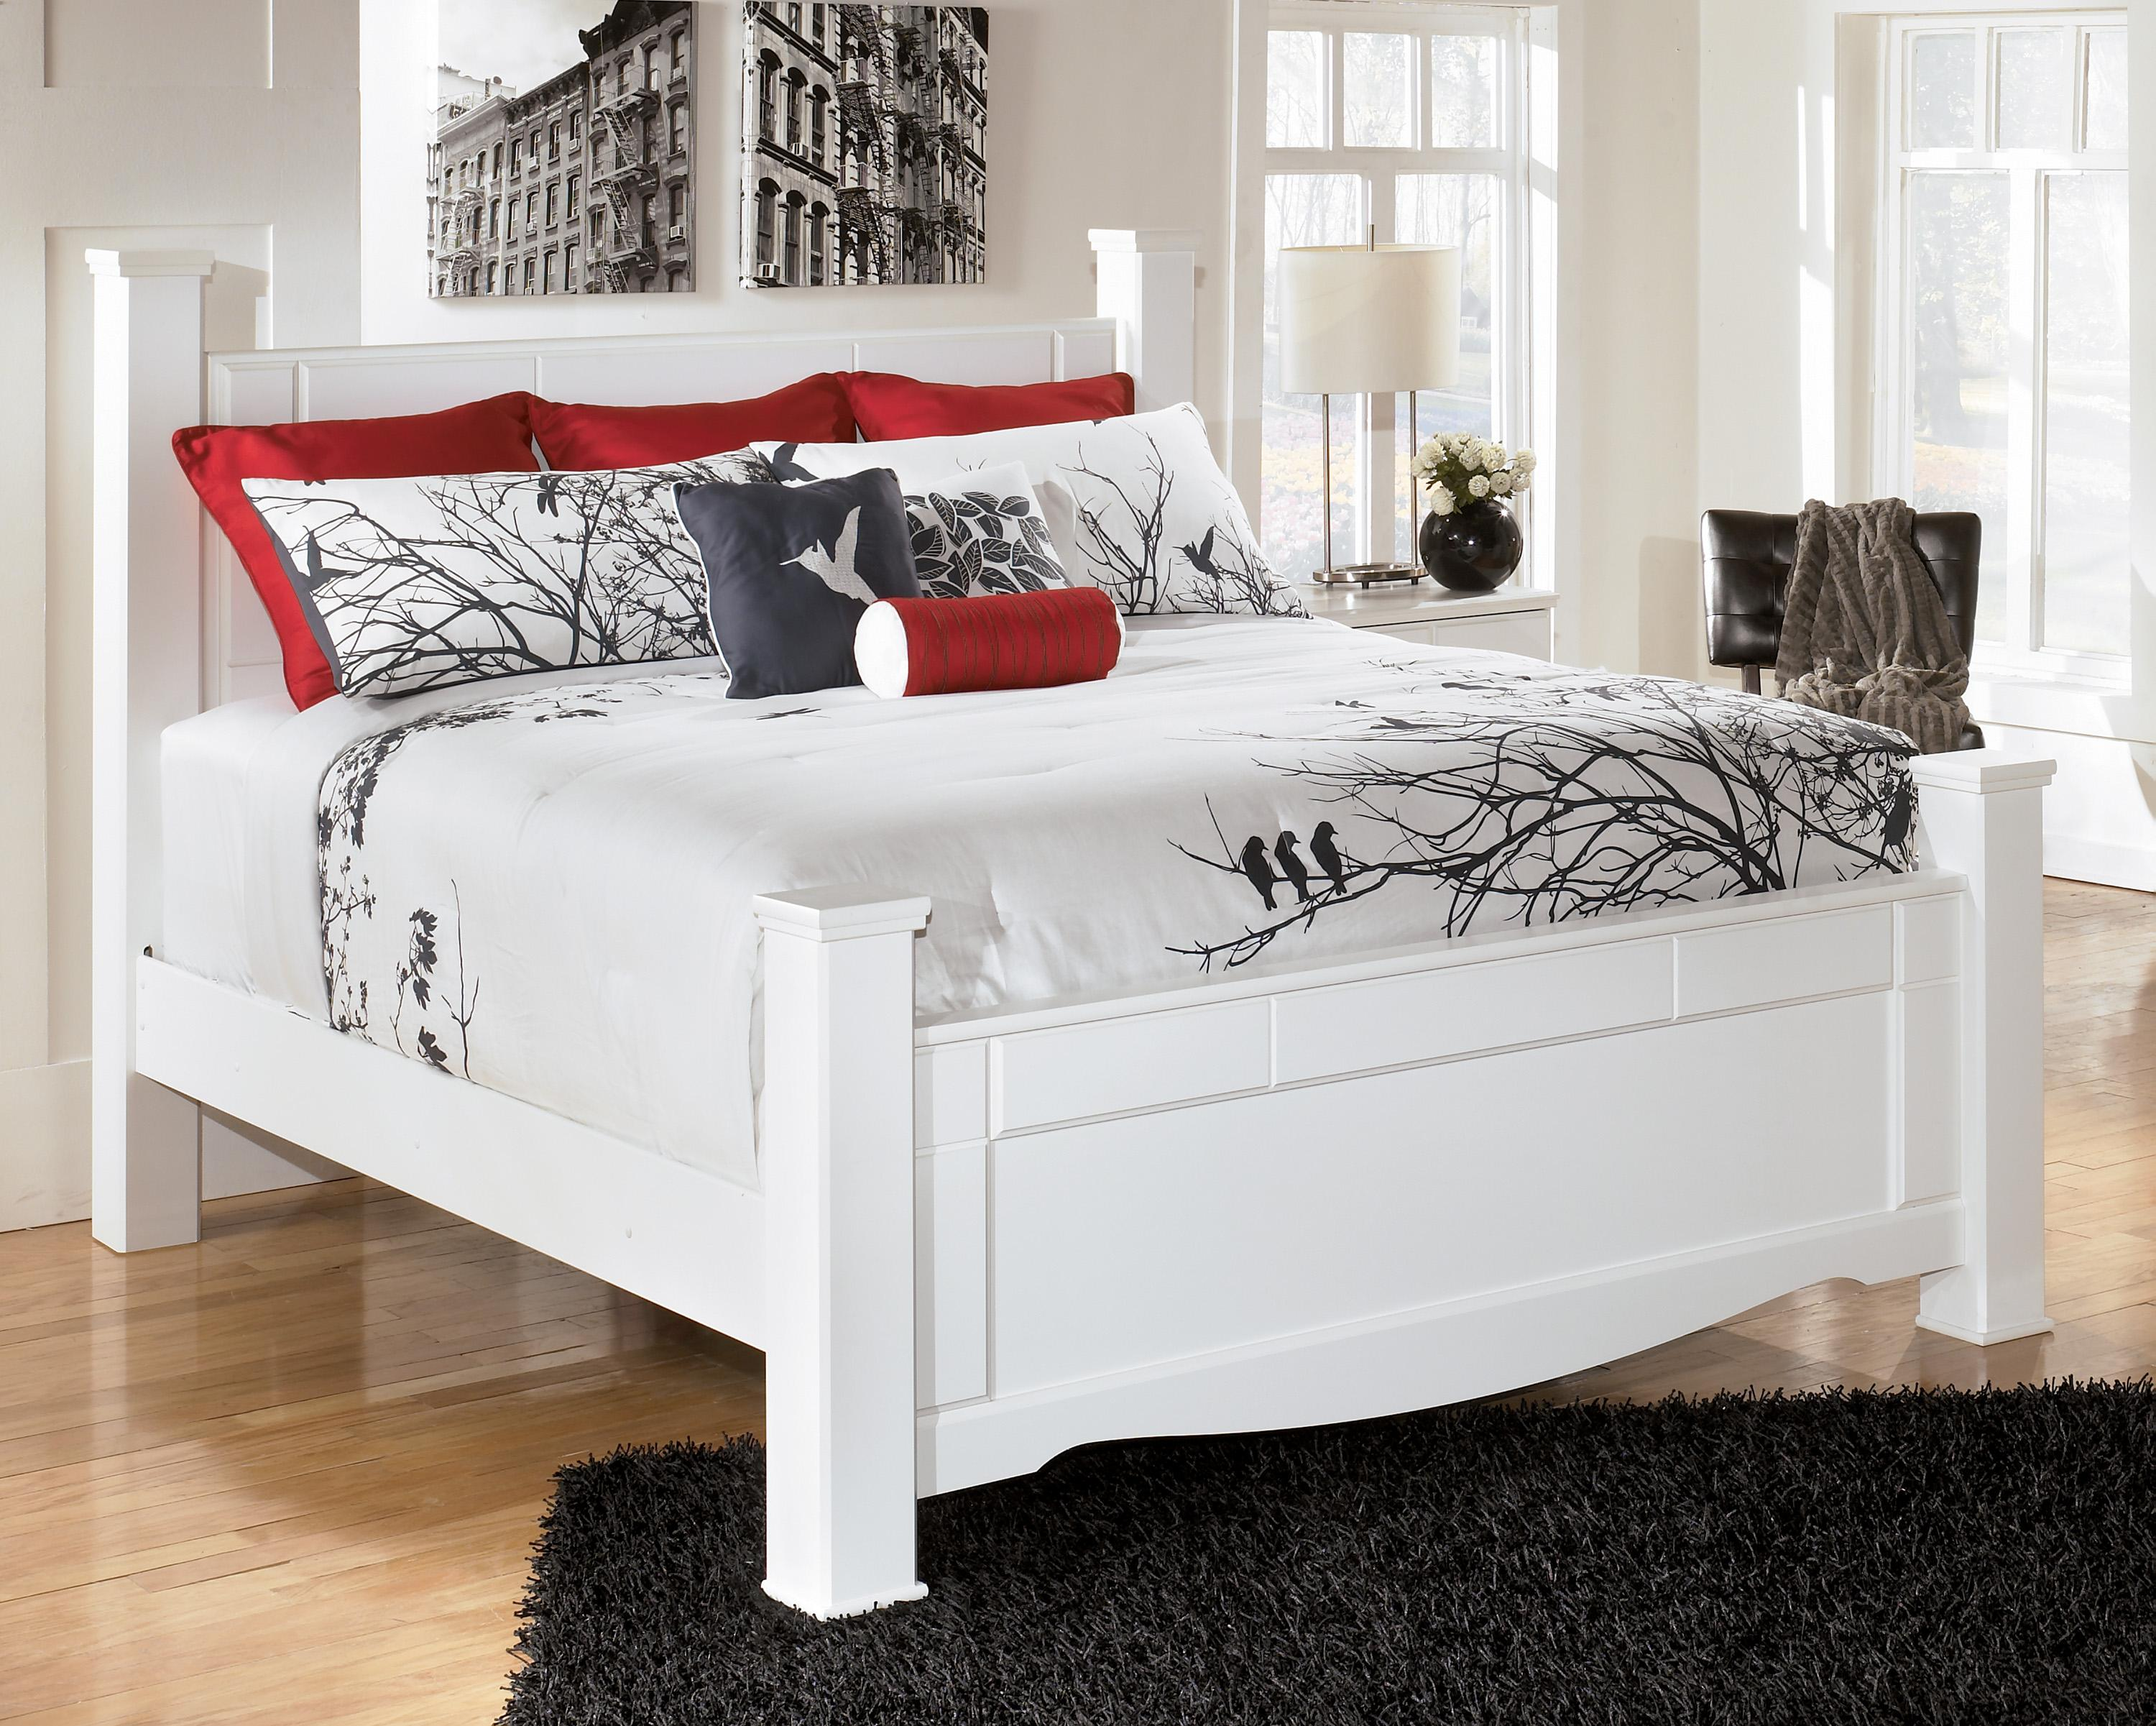 Signature Design by Ashley Weeki King Poster Bed - Item Number: B270-68+61+66+99